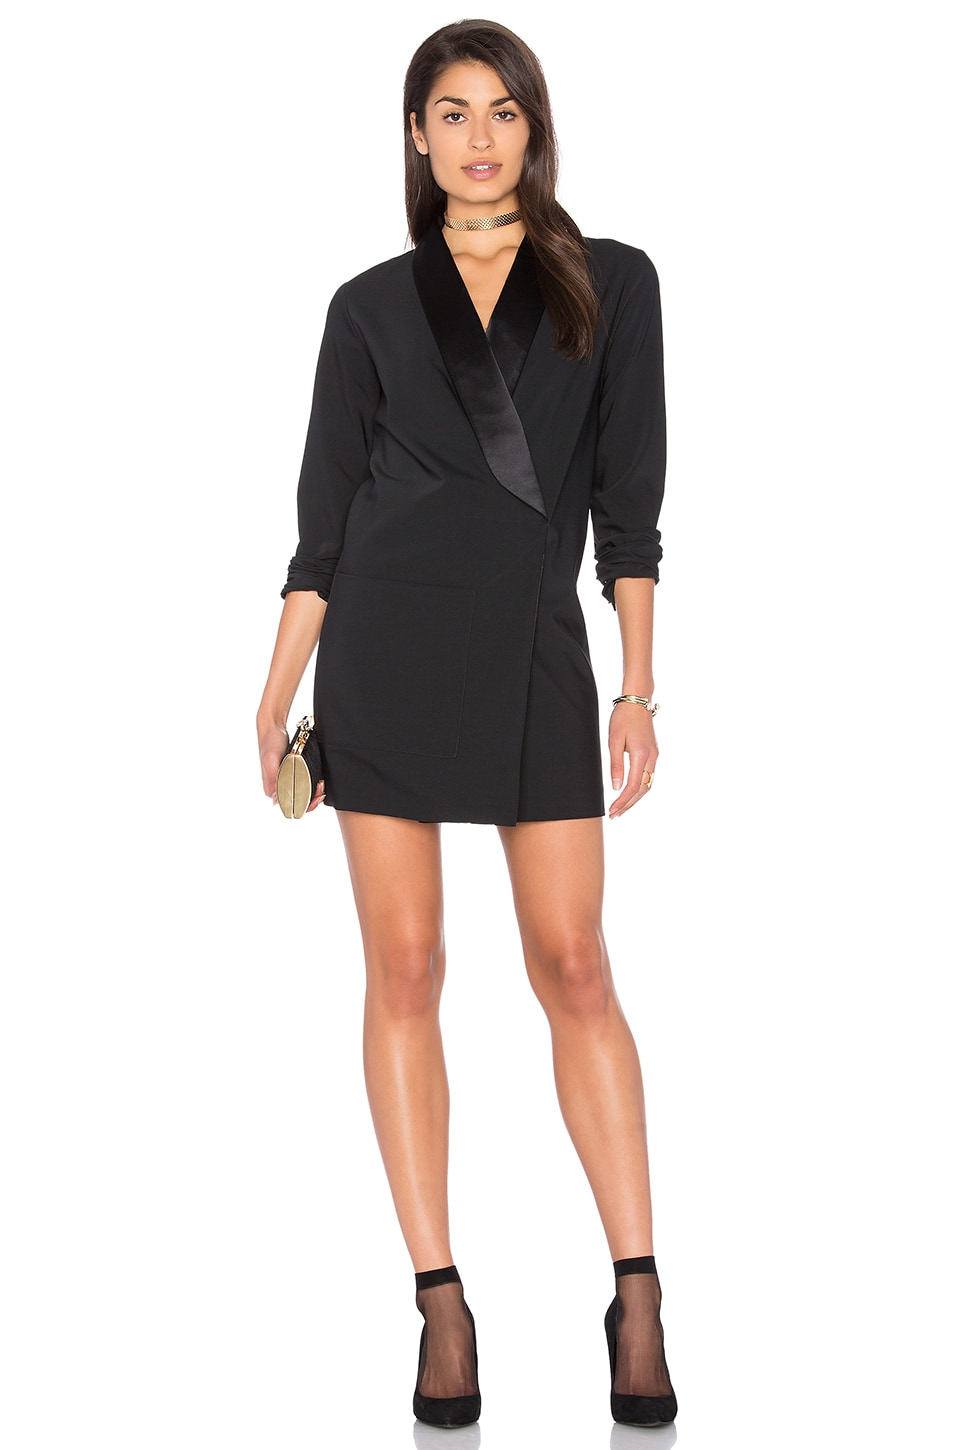 Tuxedo Dress With Satin Lapel by Tibi